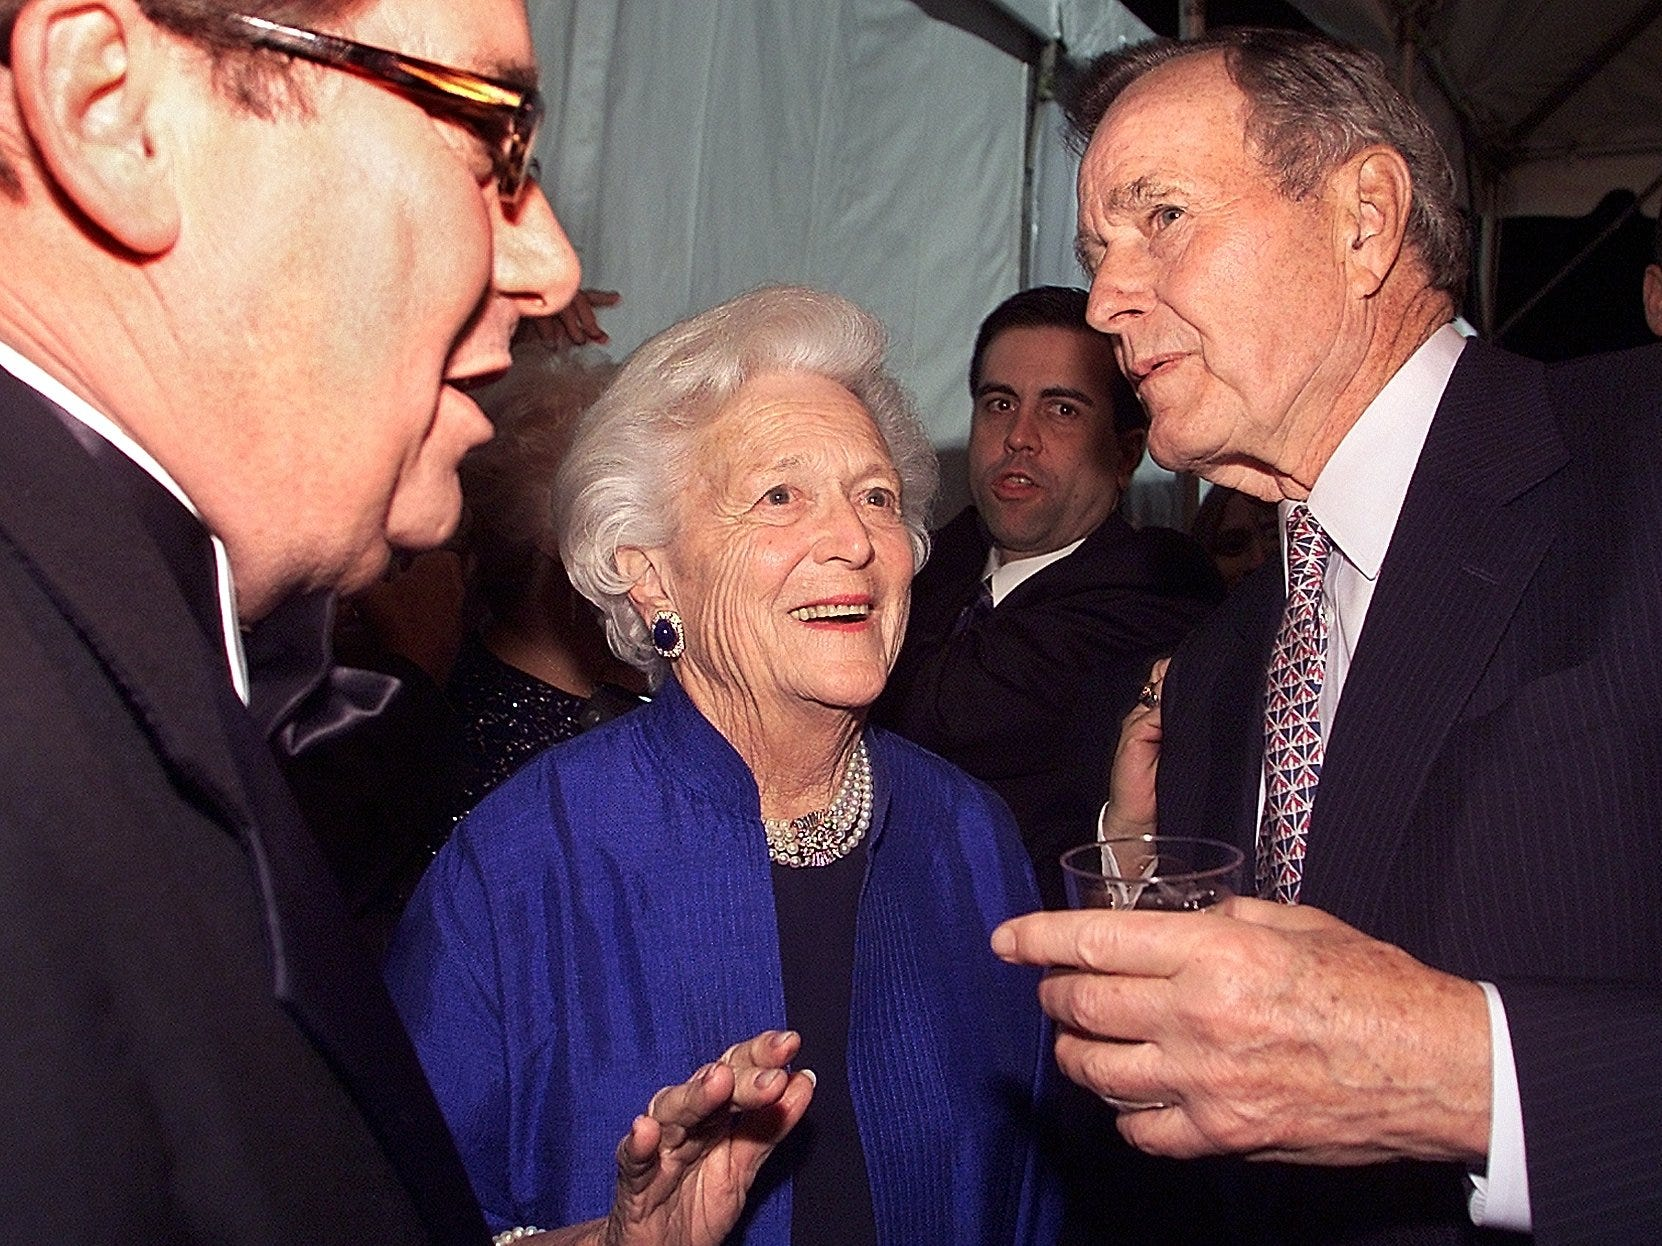 Former first lady Barbara Bush (center) and former President George H. W. Bush, right, talk to Pat Roberts, head of Florida Broadcasting, left, at Gov. Jeb Bush's Inauguration Party.  Phil Sears/Democrat files Former First Lady Barbara Bush (center) and former President George H. W. Bush, right, talk to Pat Roberts, head of Florida Broadcasting, left, at Governor Jeb Bush's Inauguration Party.